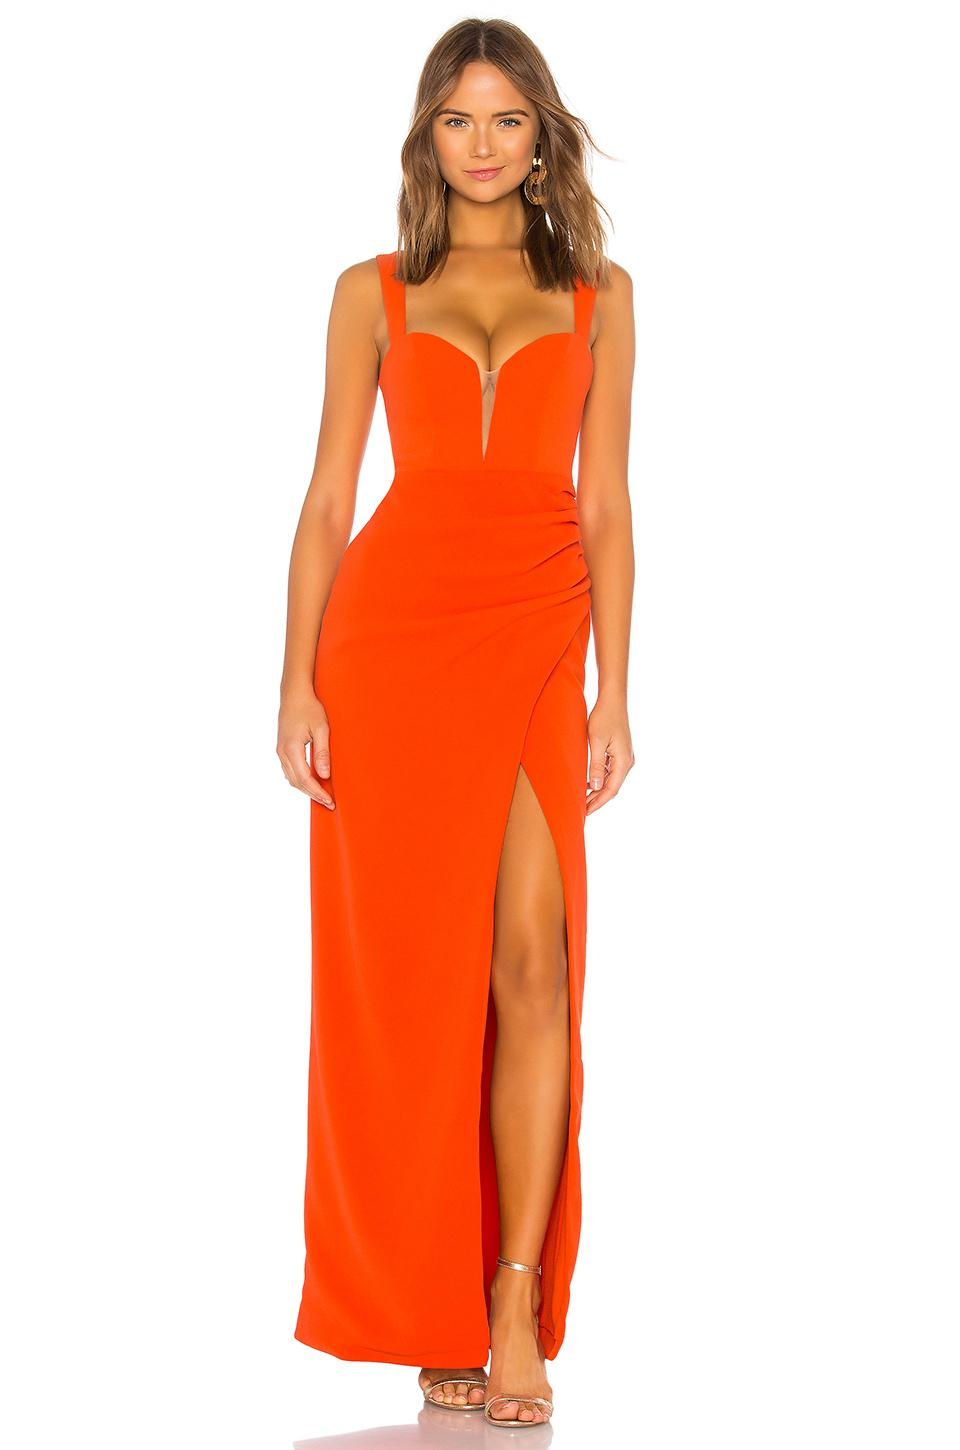 a938aa4f044 Lovers + Friends Dolores Gown in Orange - Lyst